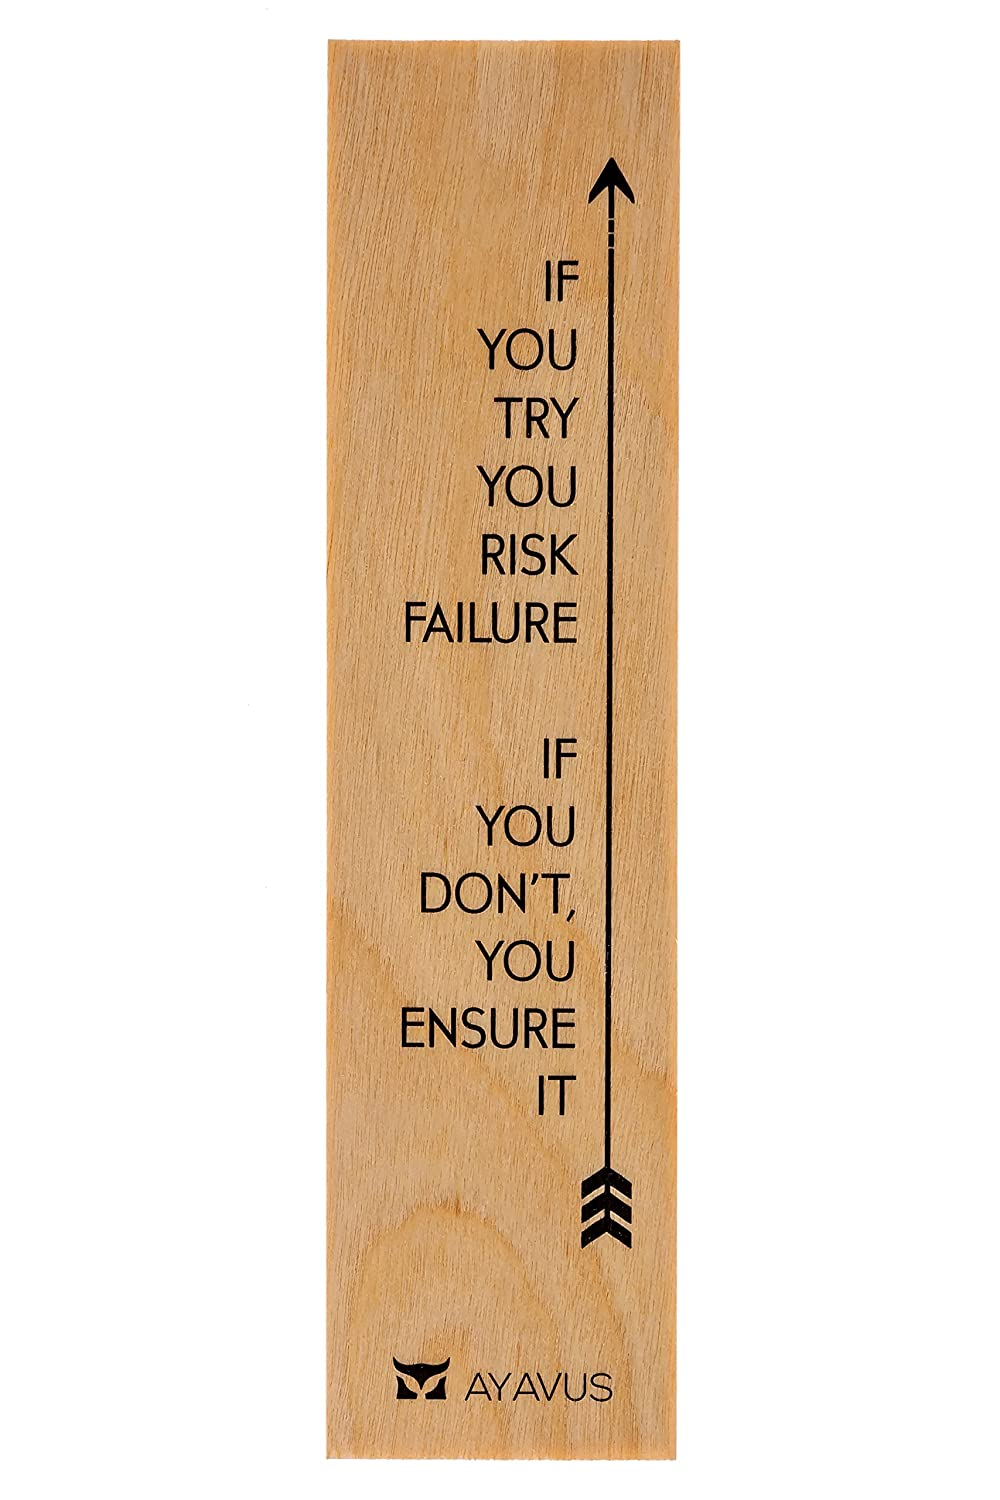 If You Try You Risk Failure, If You Don't You Ensure It - Wood Bookmark Entrepreneur Quote Hipster Arrow Inspirational Quotes Shark Tank Dragon's Den Self Improvement … AYAVUS B2